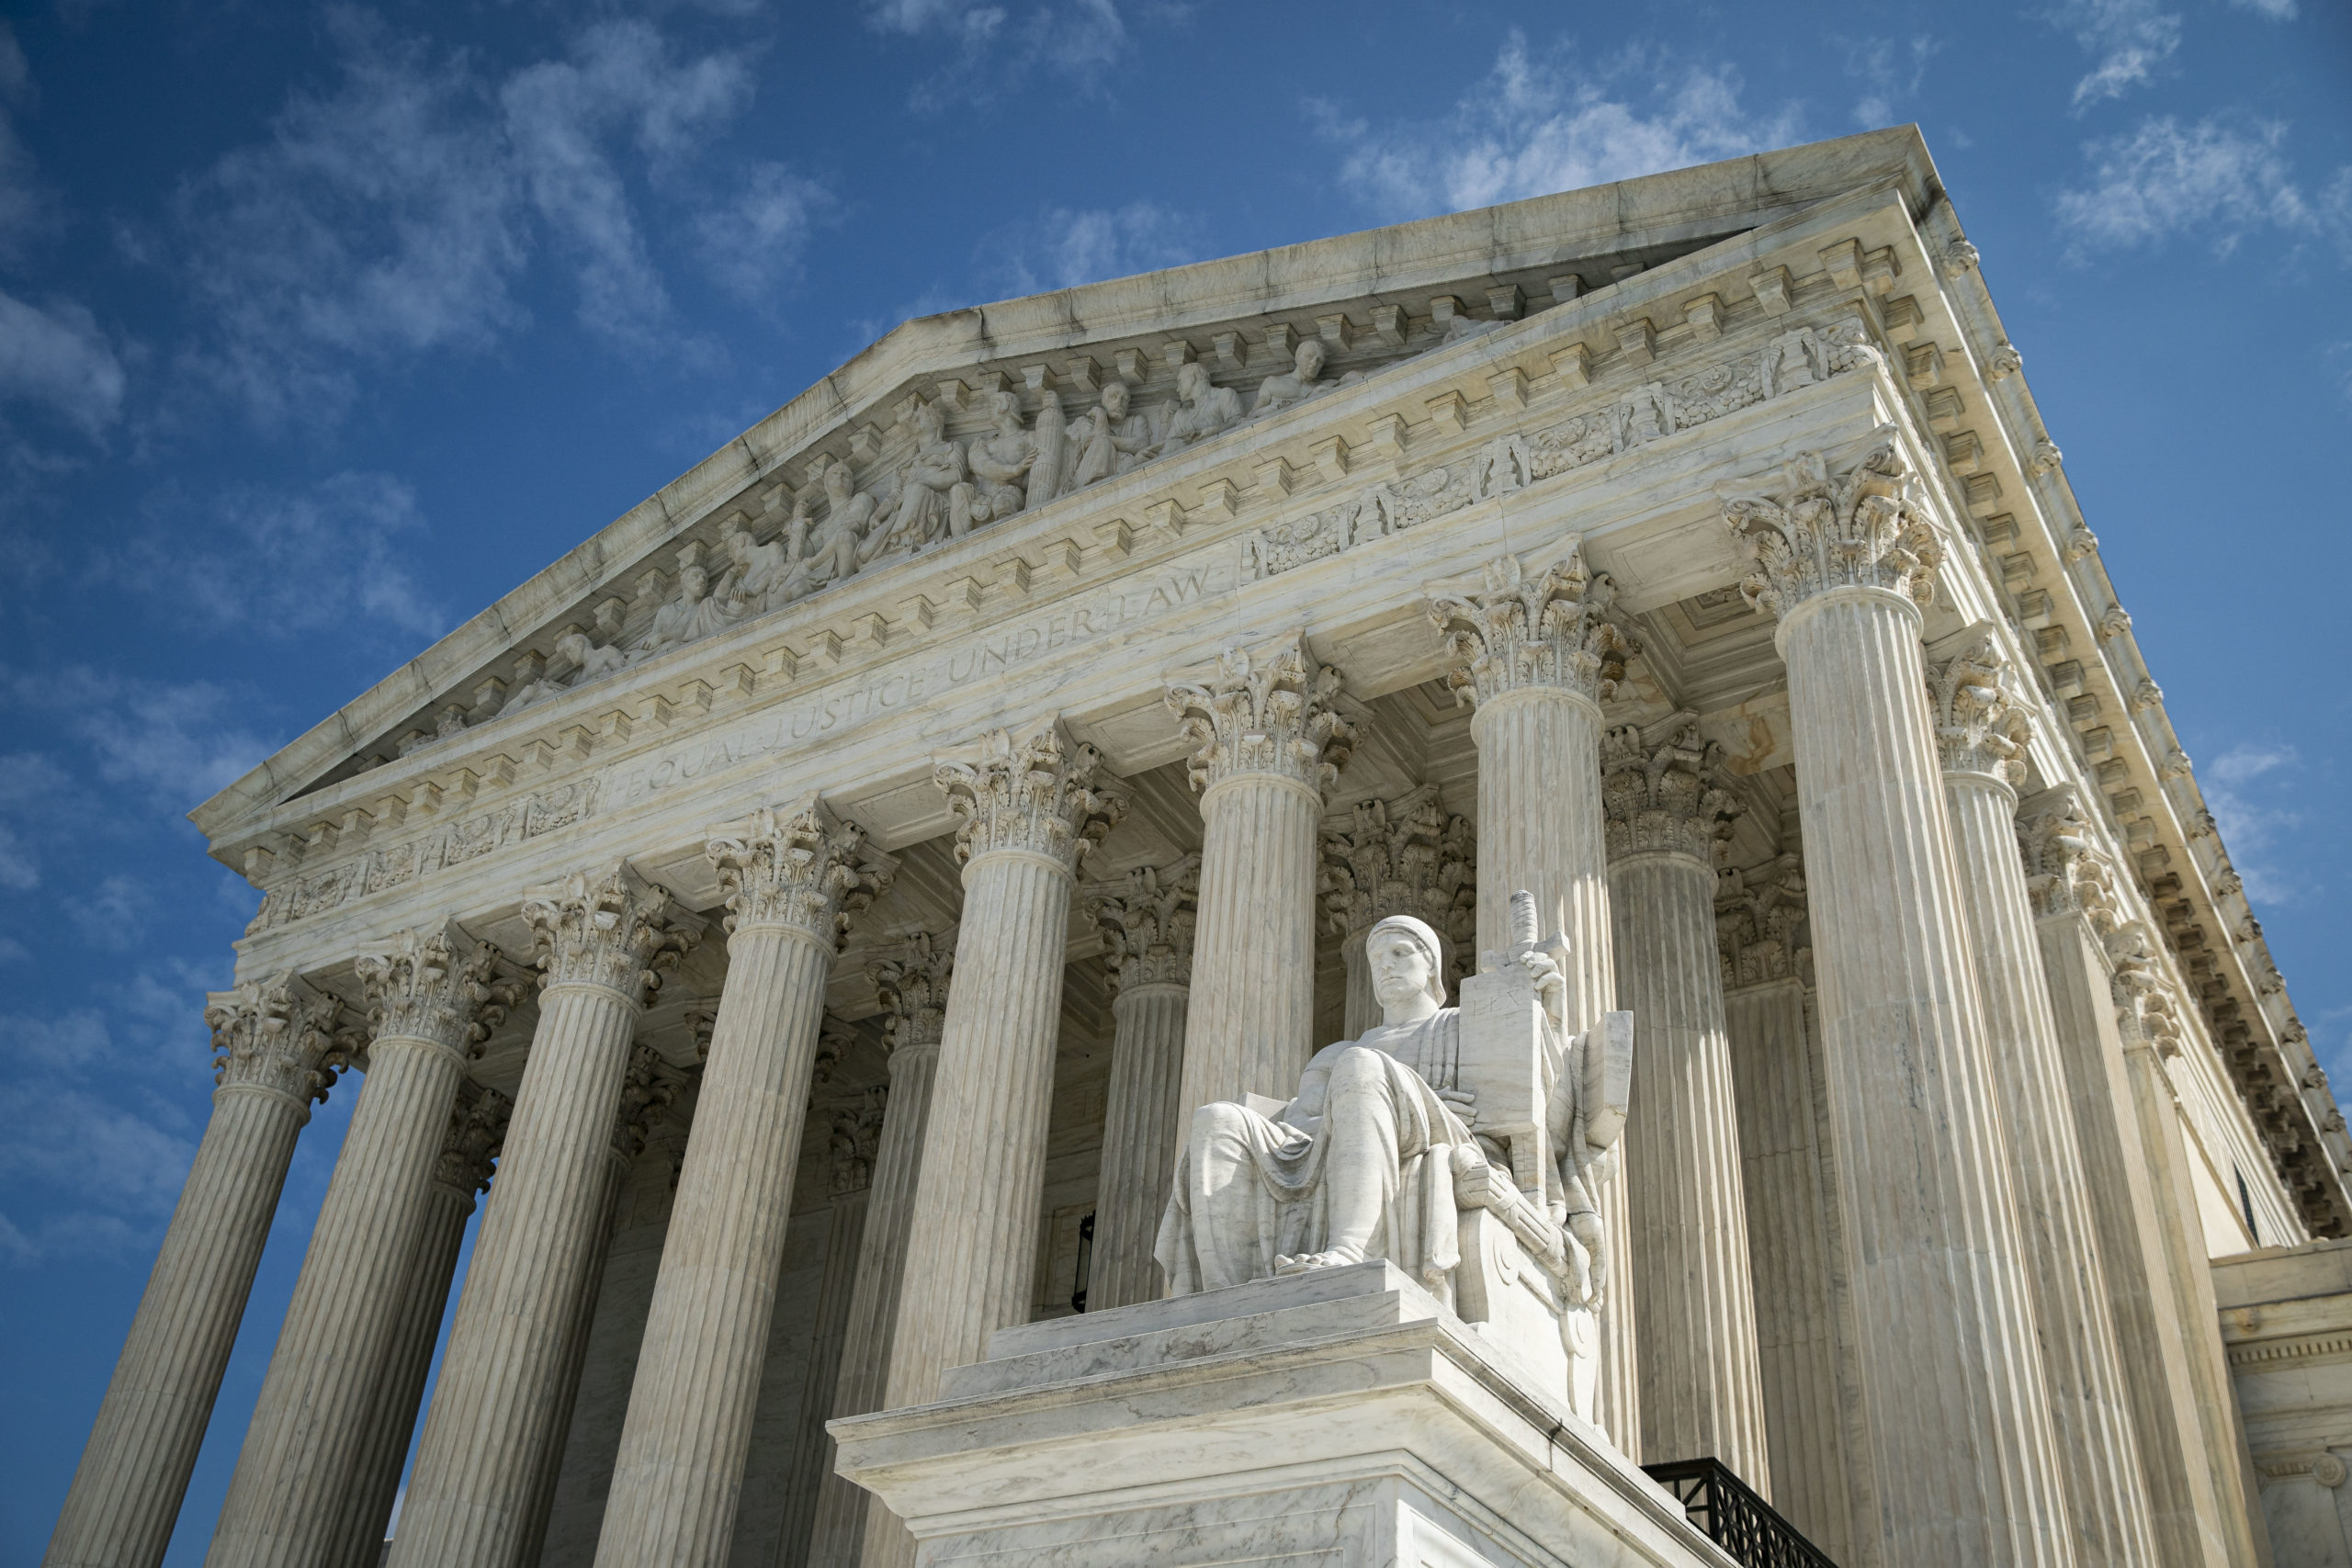 WASHINGTON, DC - SEPTEMBER 28: The Guardian or Authority of Law, created by sculptor James Earle Fraser, rests on the side of the U.S. Supreme Court on September 28, 2020 in Washington, DC. This week Seventh U.S. Circuit Court Judge Amy Coney Barrett, U.S. President Donald Trump's nominee to the Supreme Court, will begin meeting with Senators as she seeks to be confirmed before the presidential election. (Photo by Al Drago/Getty Images)